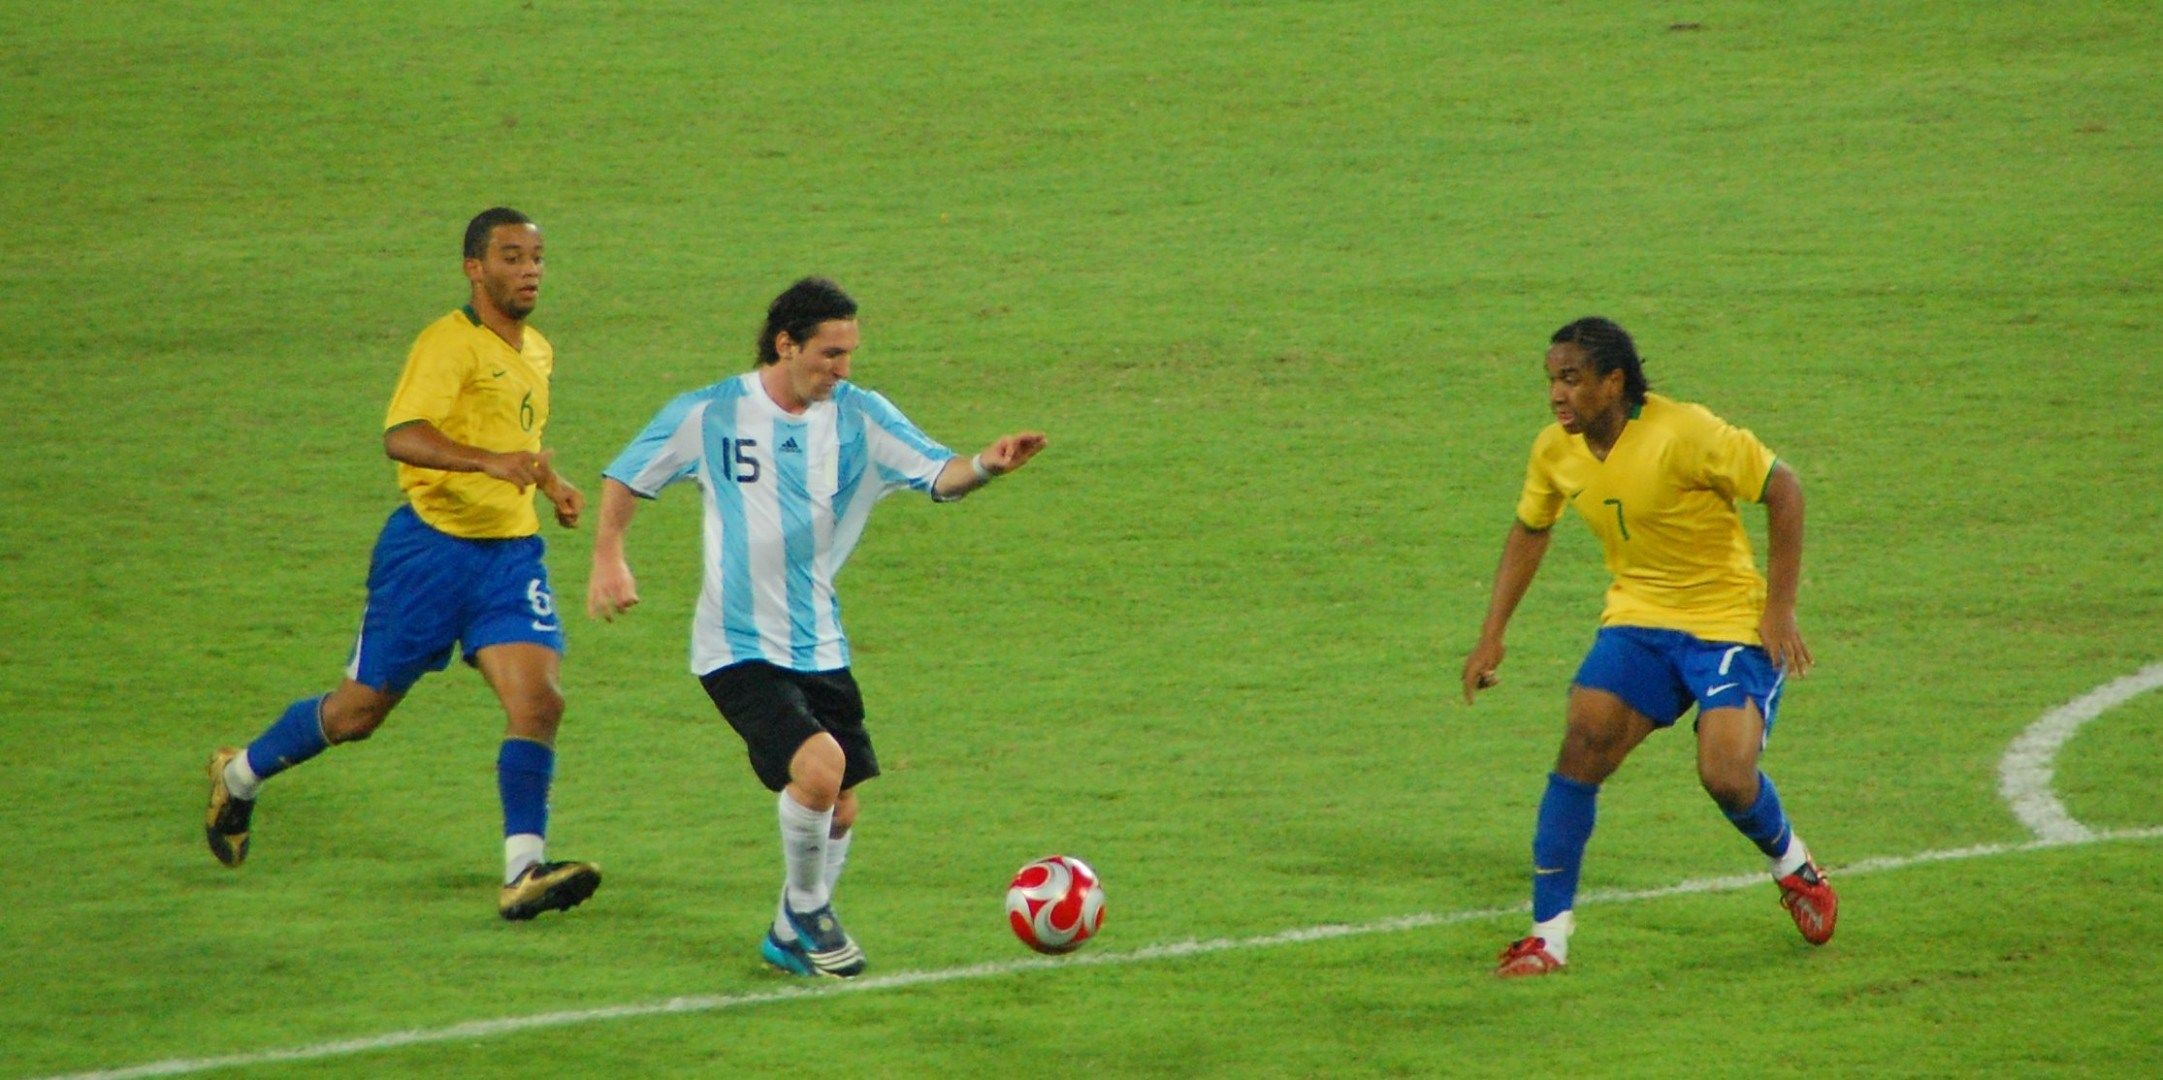 Pin By Foodball Wall On Foodball Wall Pinterest Messi Lionel